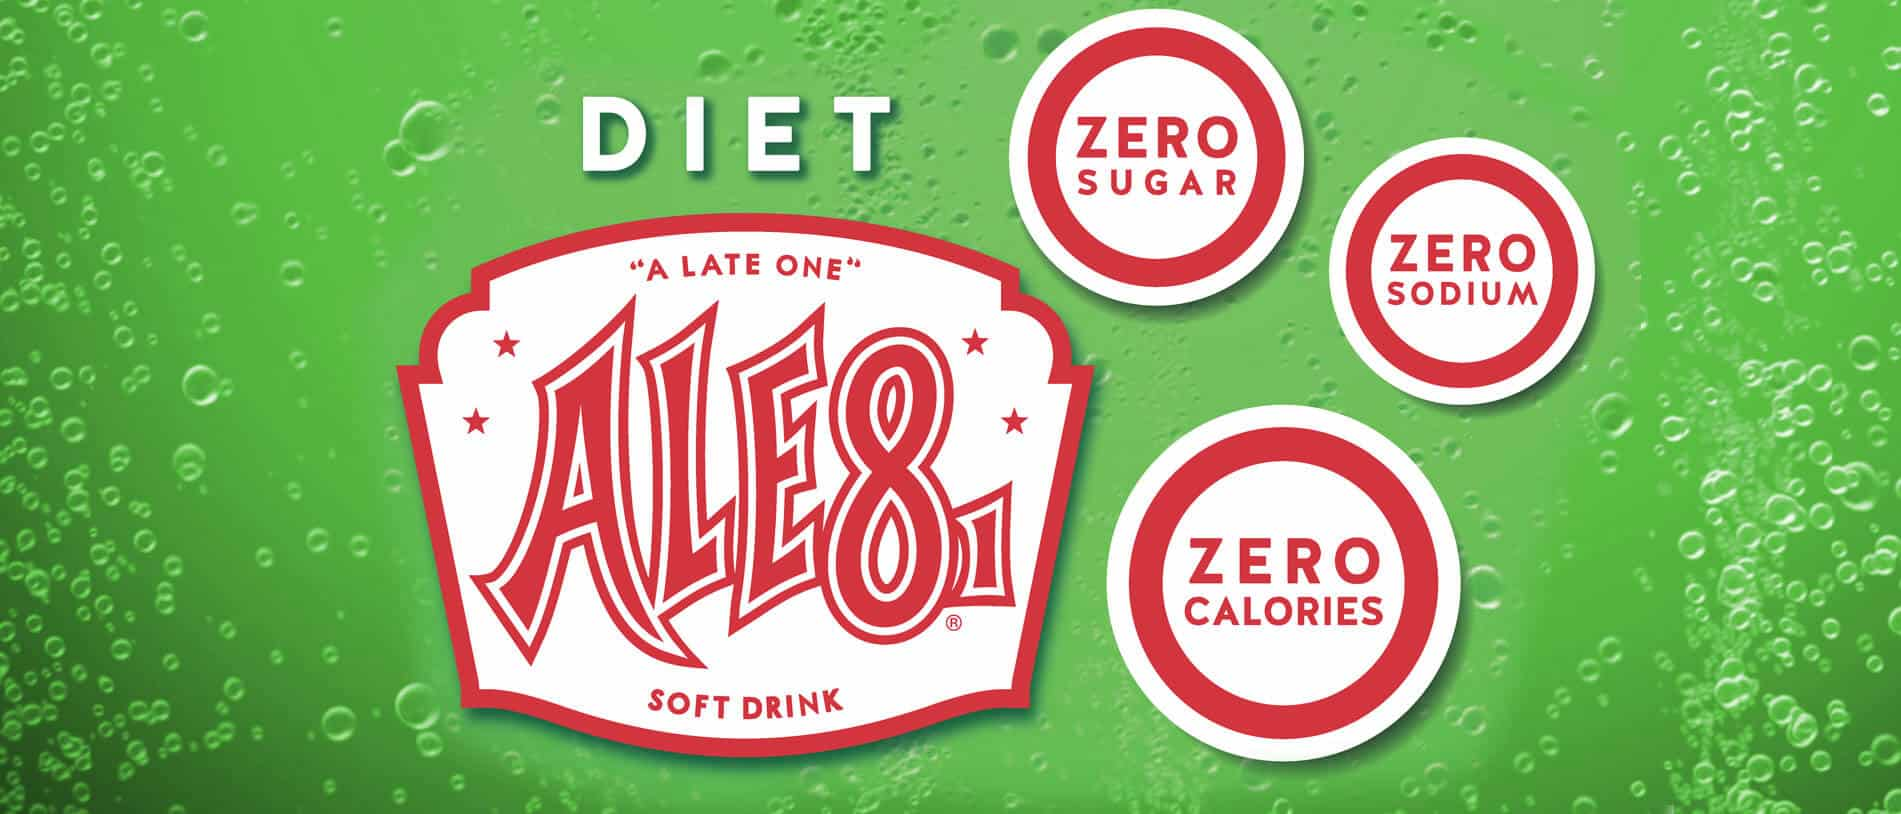 Diet Ale-8-One